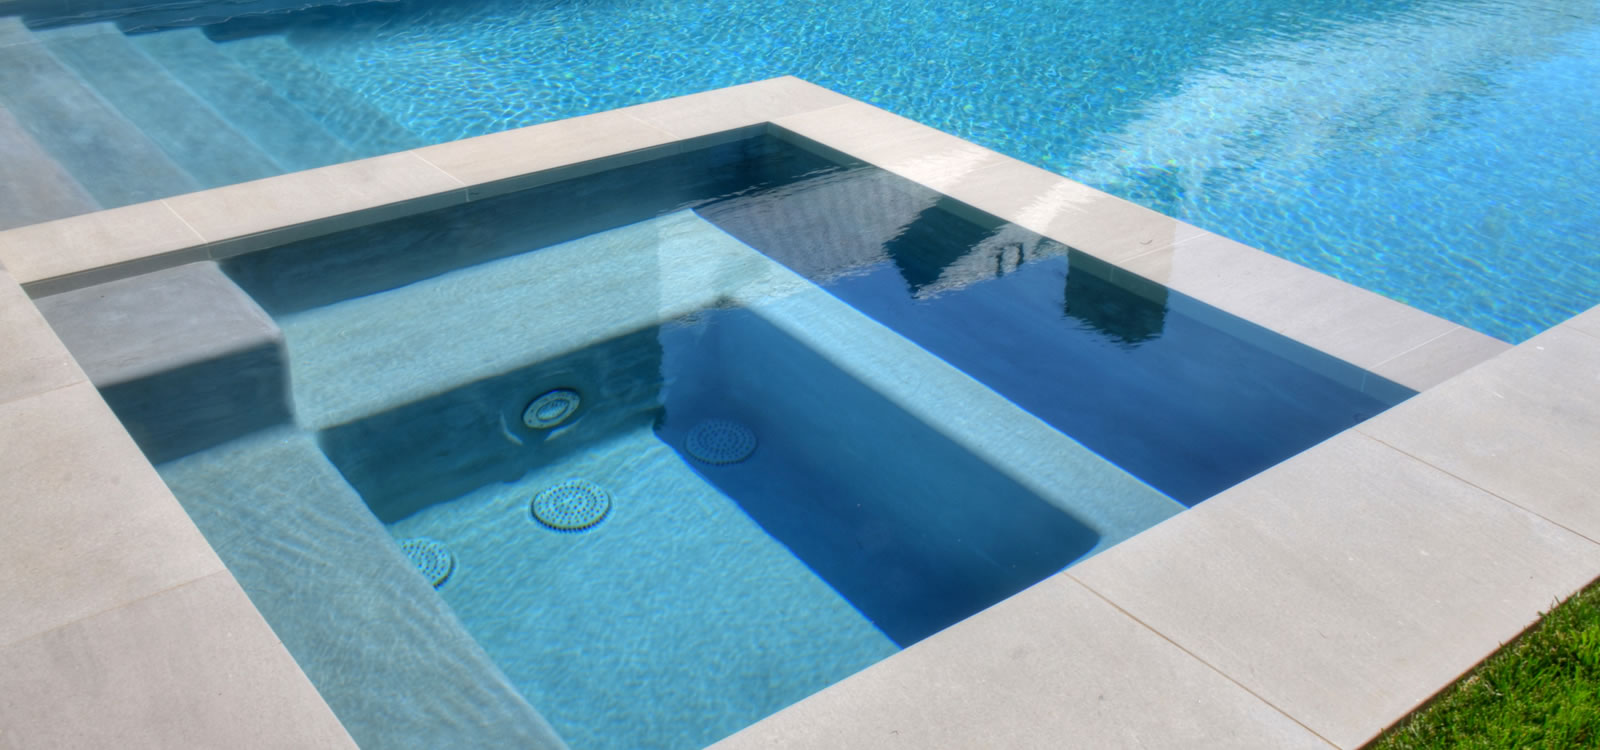 large spa designs, inground spa designs, pool spa ideas, home interior spa designs, pool and pergola designs, pool and shower designs, backyard pool designs, pool and basketball designs, spa and massage room designs, pool and fitness center designs, geometric pool designs, pond and pool designs, pool and playground designs, pool designs california, luxury pool designs, modern pool designs, pool club in los angeles, pool spa combo, cad pool landscape designs, swimming pool designs, on pool and spa designs